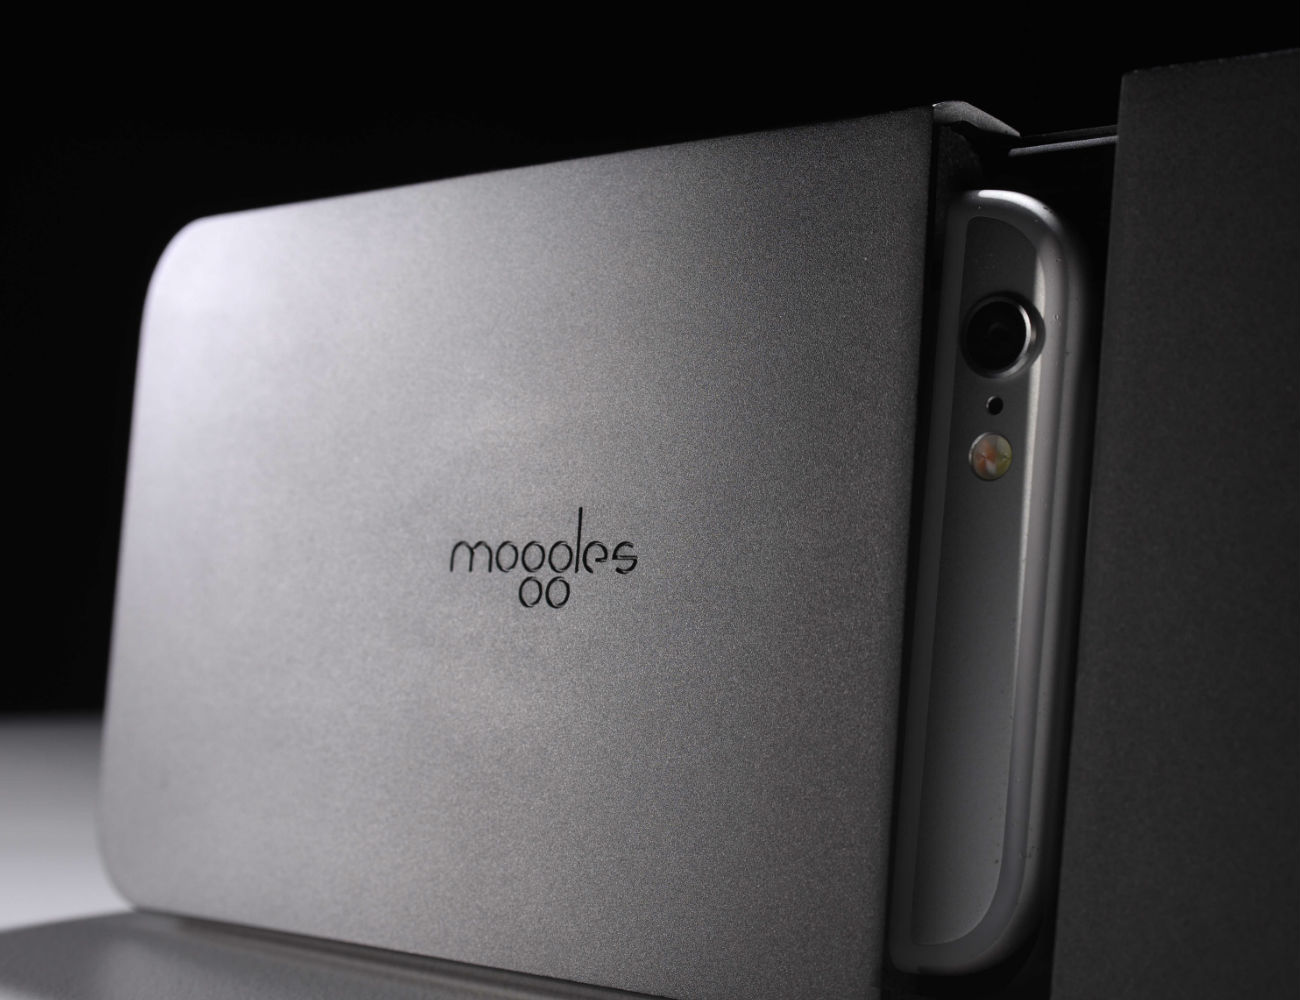 Moggles Pocket Virtual Reality